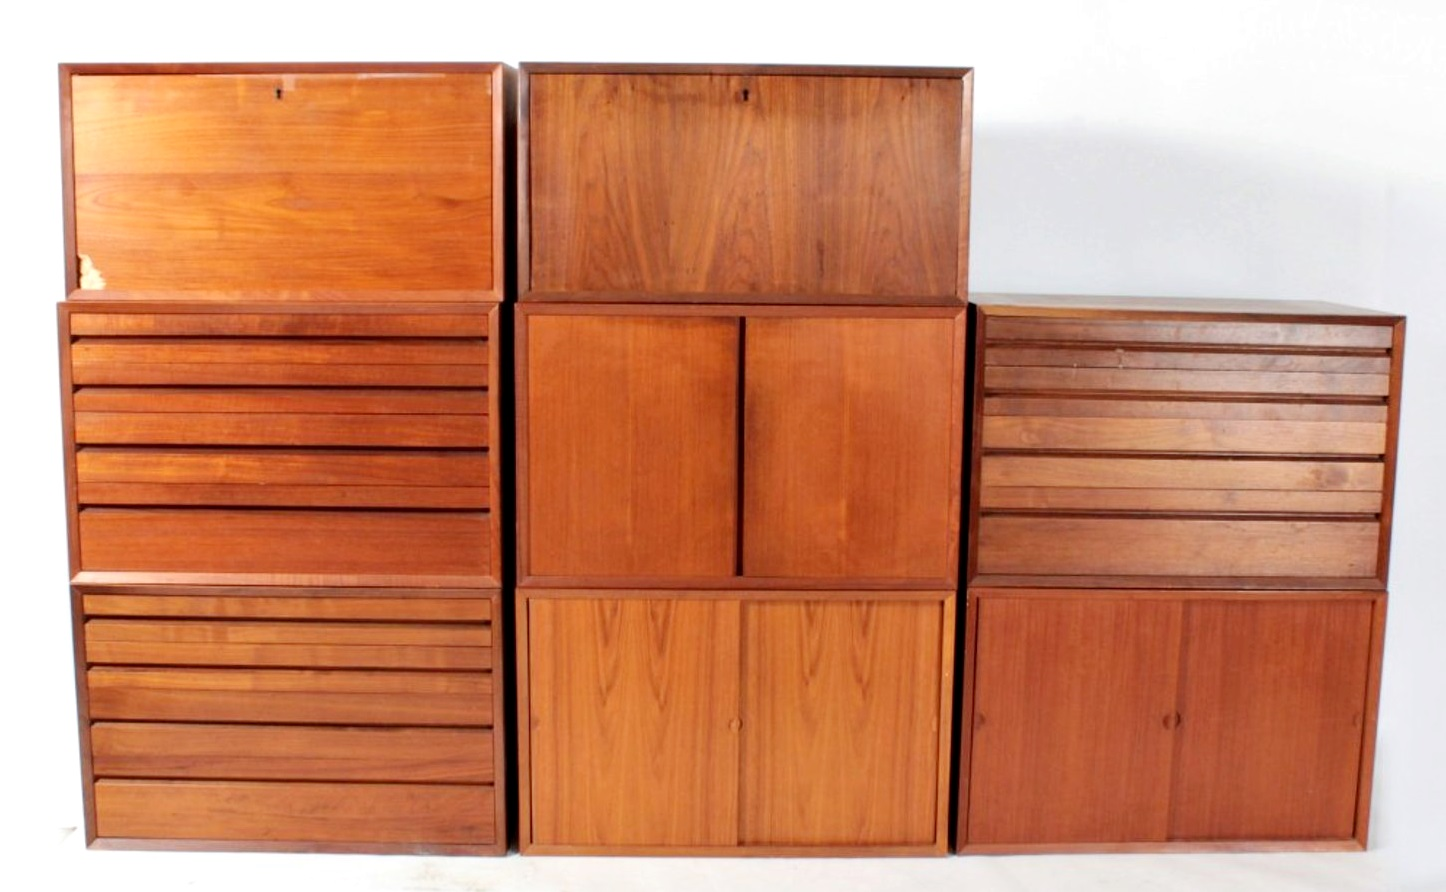 Poul Cadovious CADO Mid-Century Modern Wall Unit. Sold For $4,500